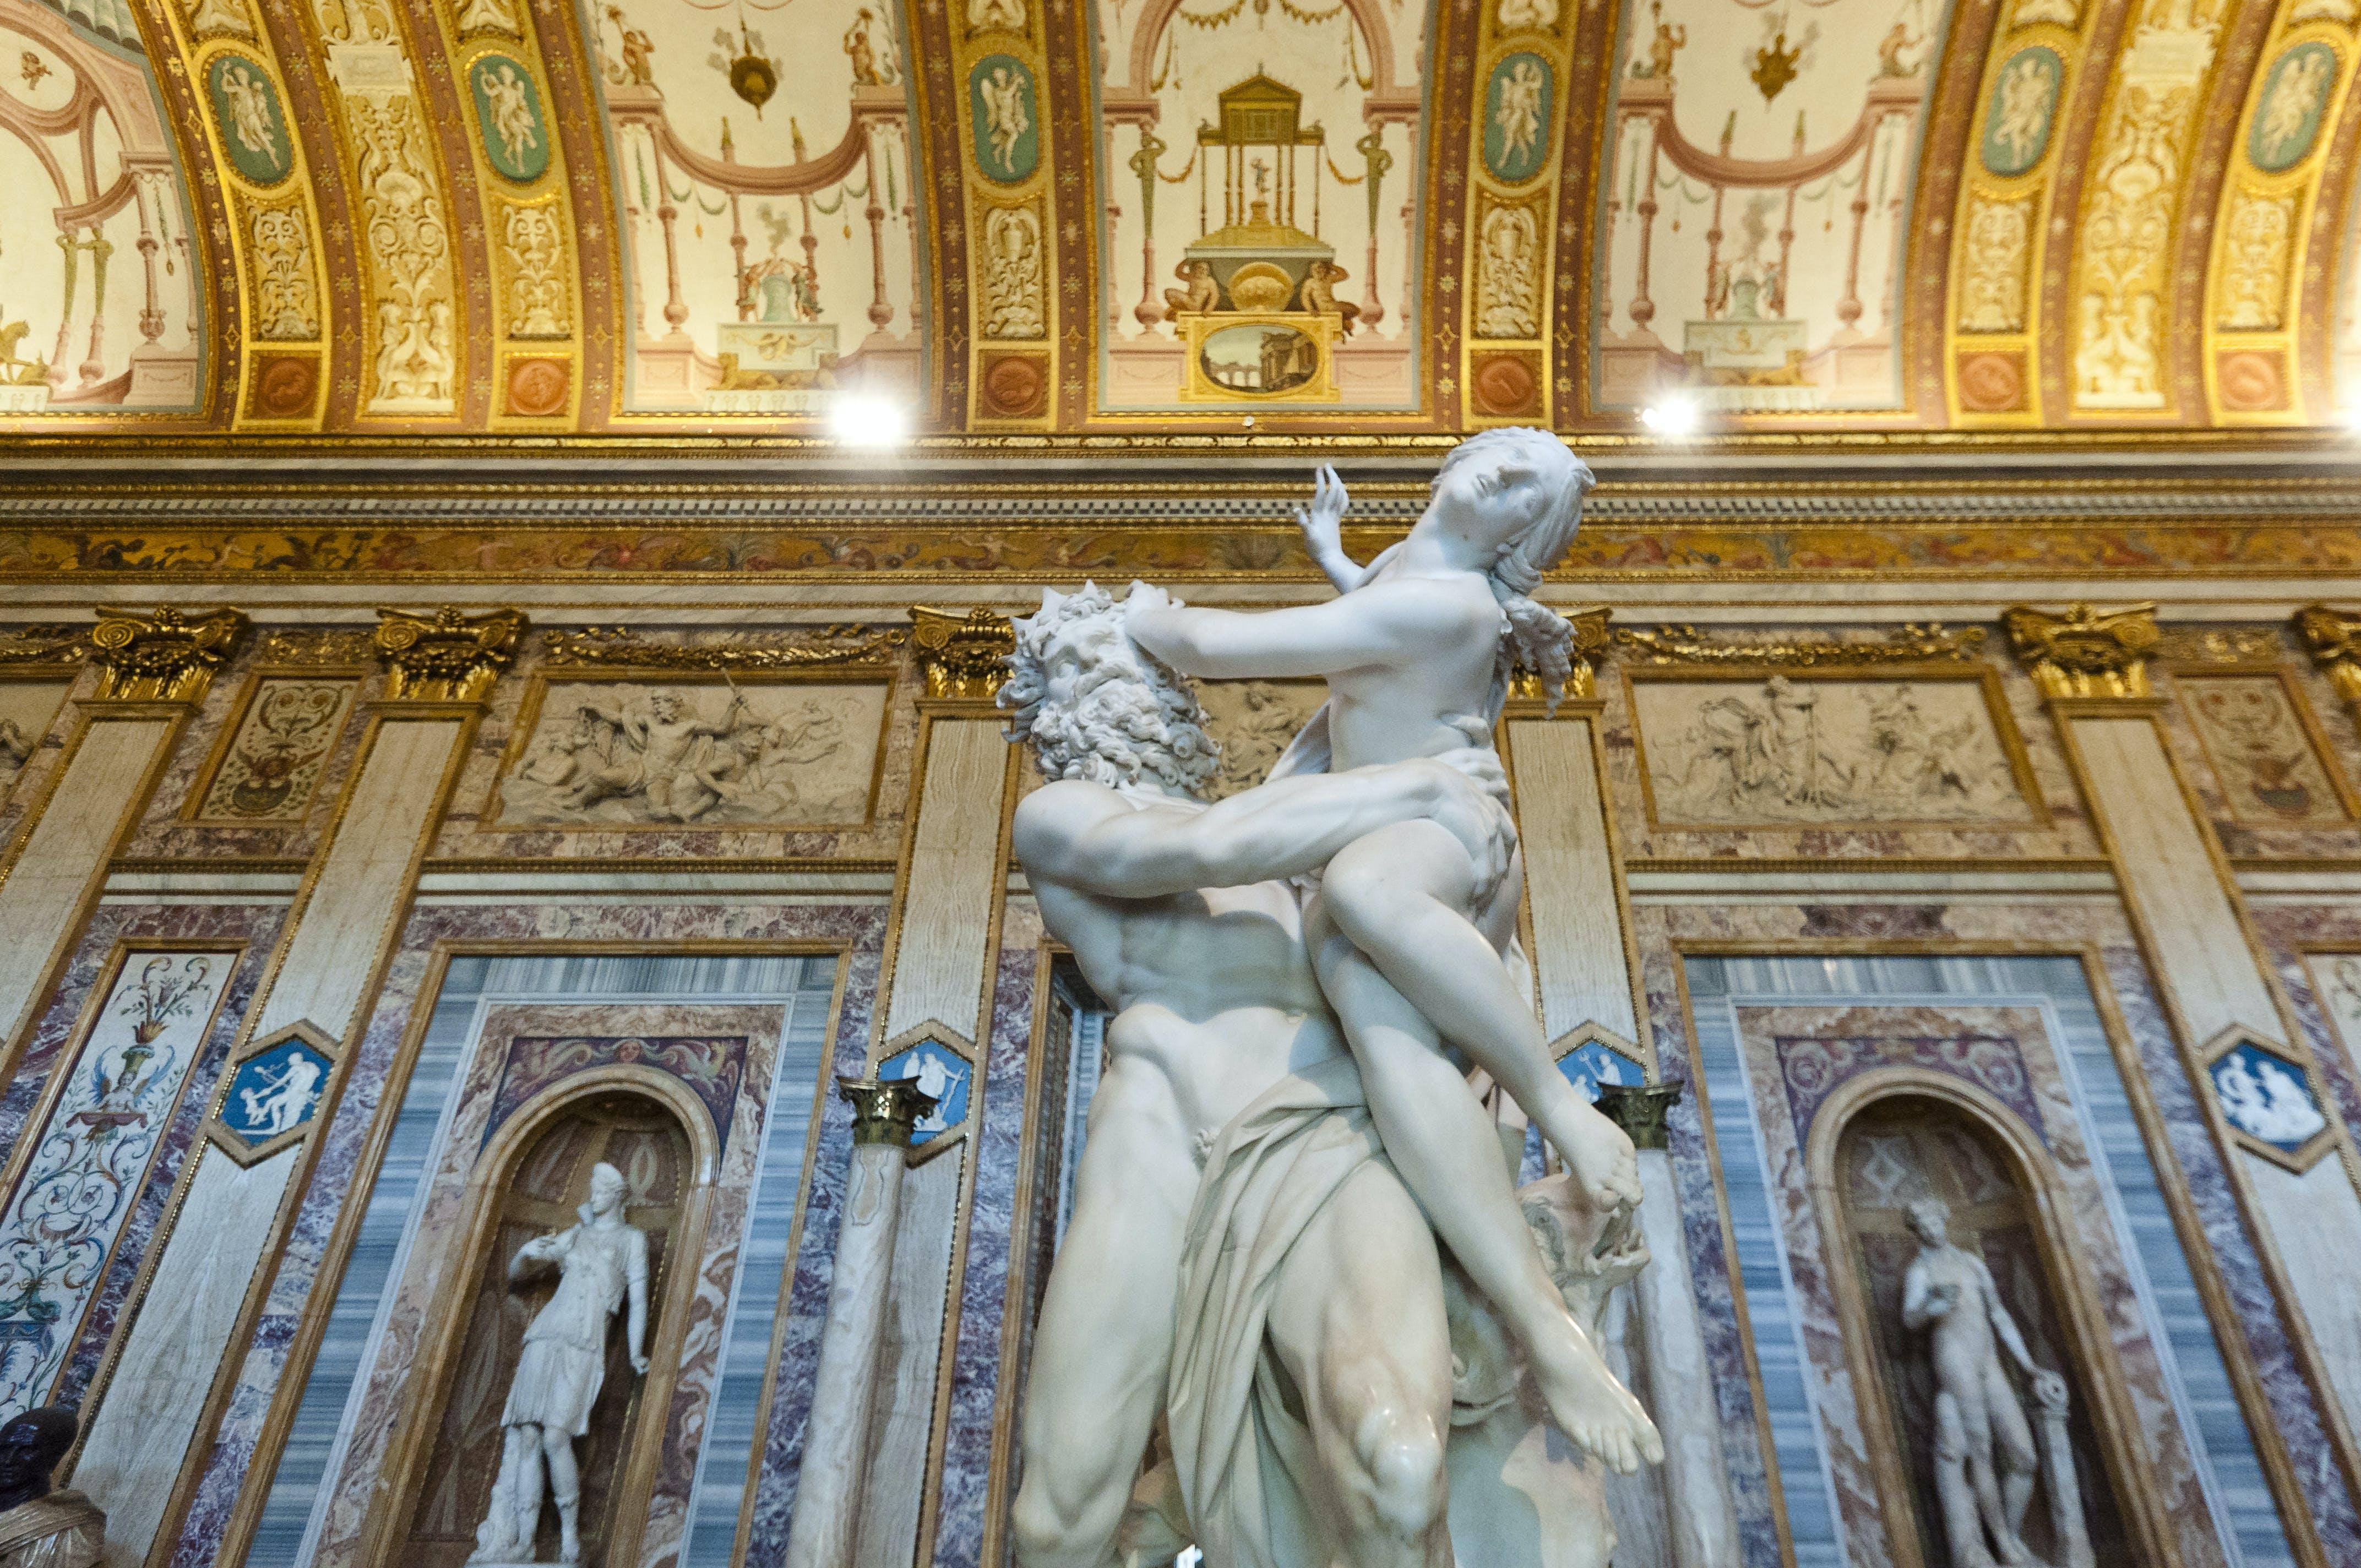 Borghese Gallery Skip-the-Line Tickets